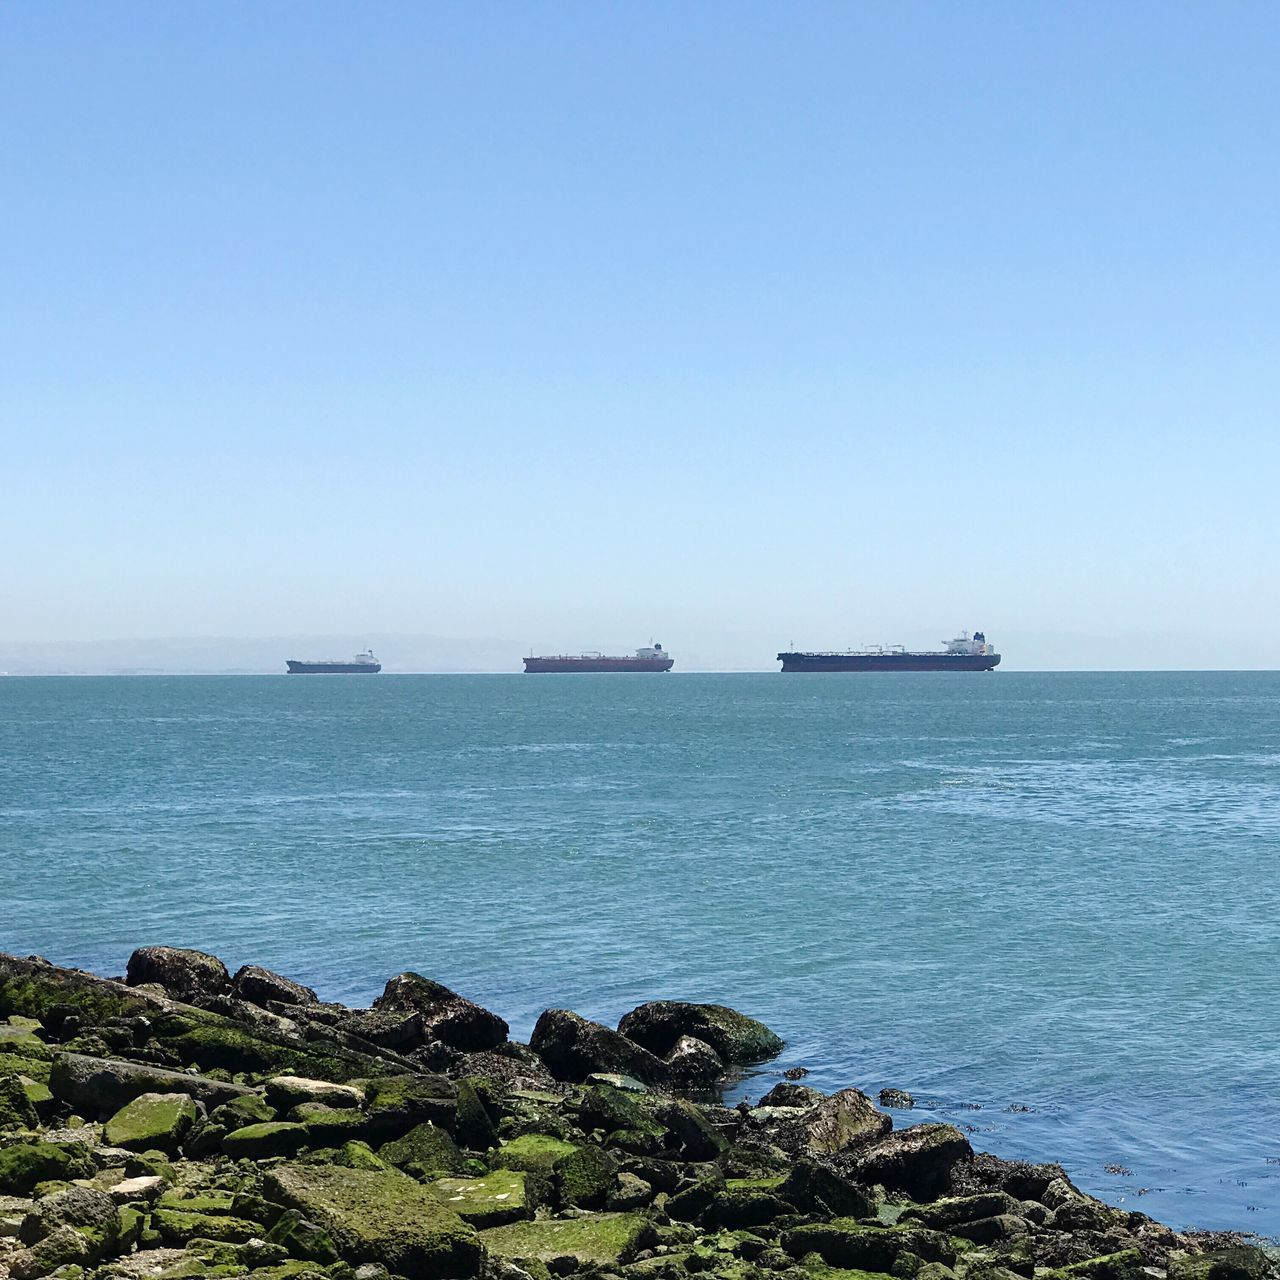 Sea Water No People Nautical Vessel Day Nature Transportation Horizon Over Water Outdoors Tranquil Scene Mode Of Transport Clear Sky Scenics Tranquility Beauty In Nature Blue Sky Ships In The Bay